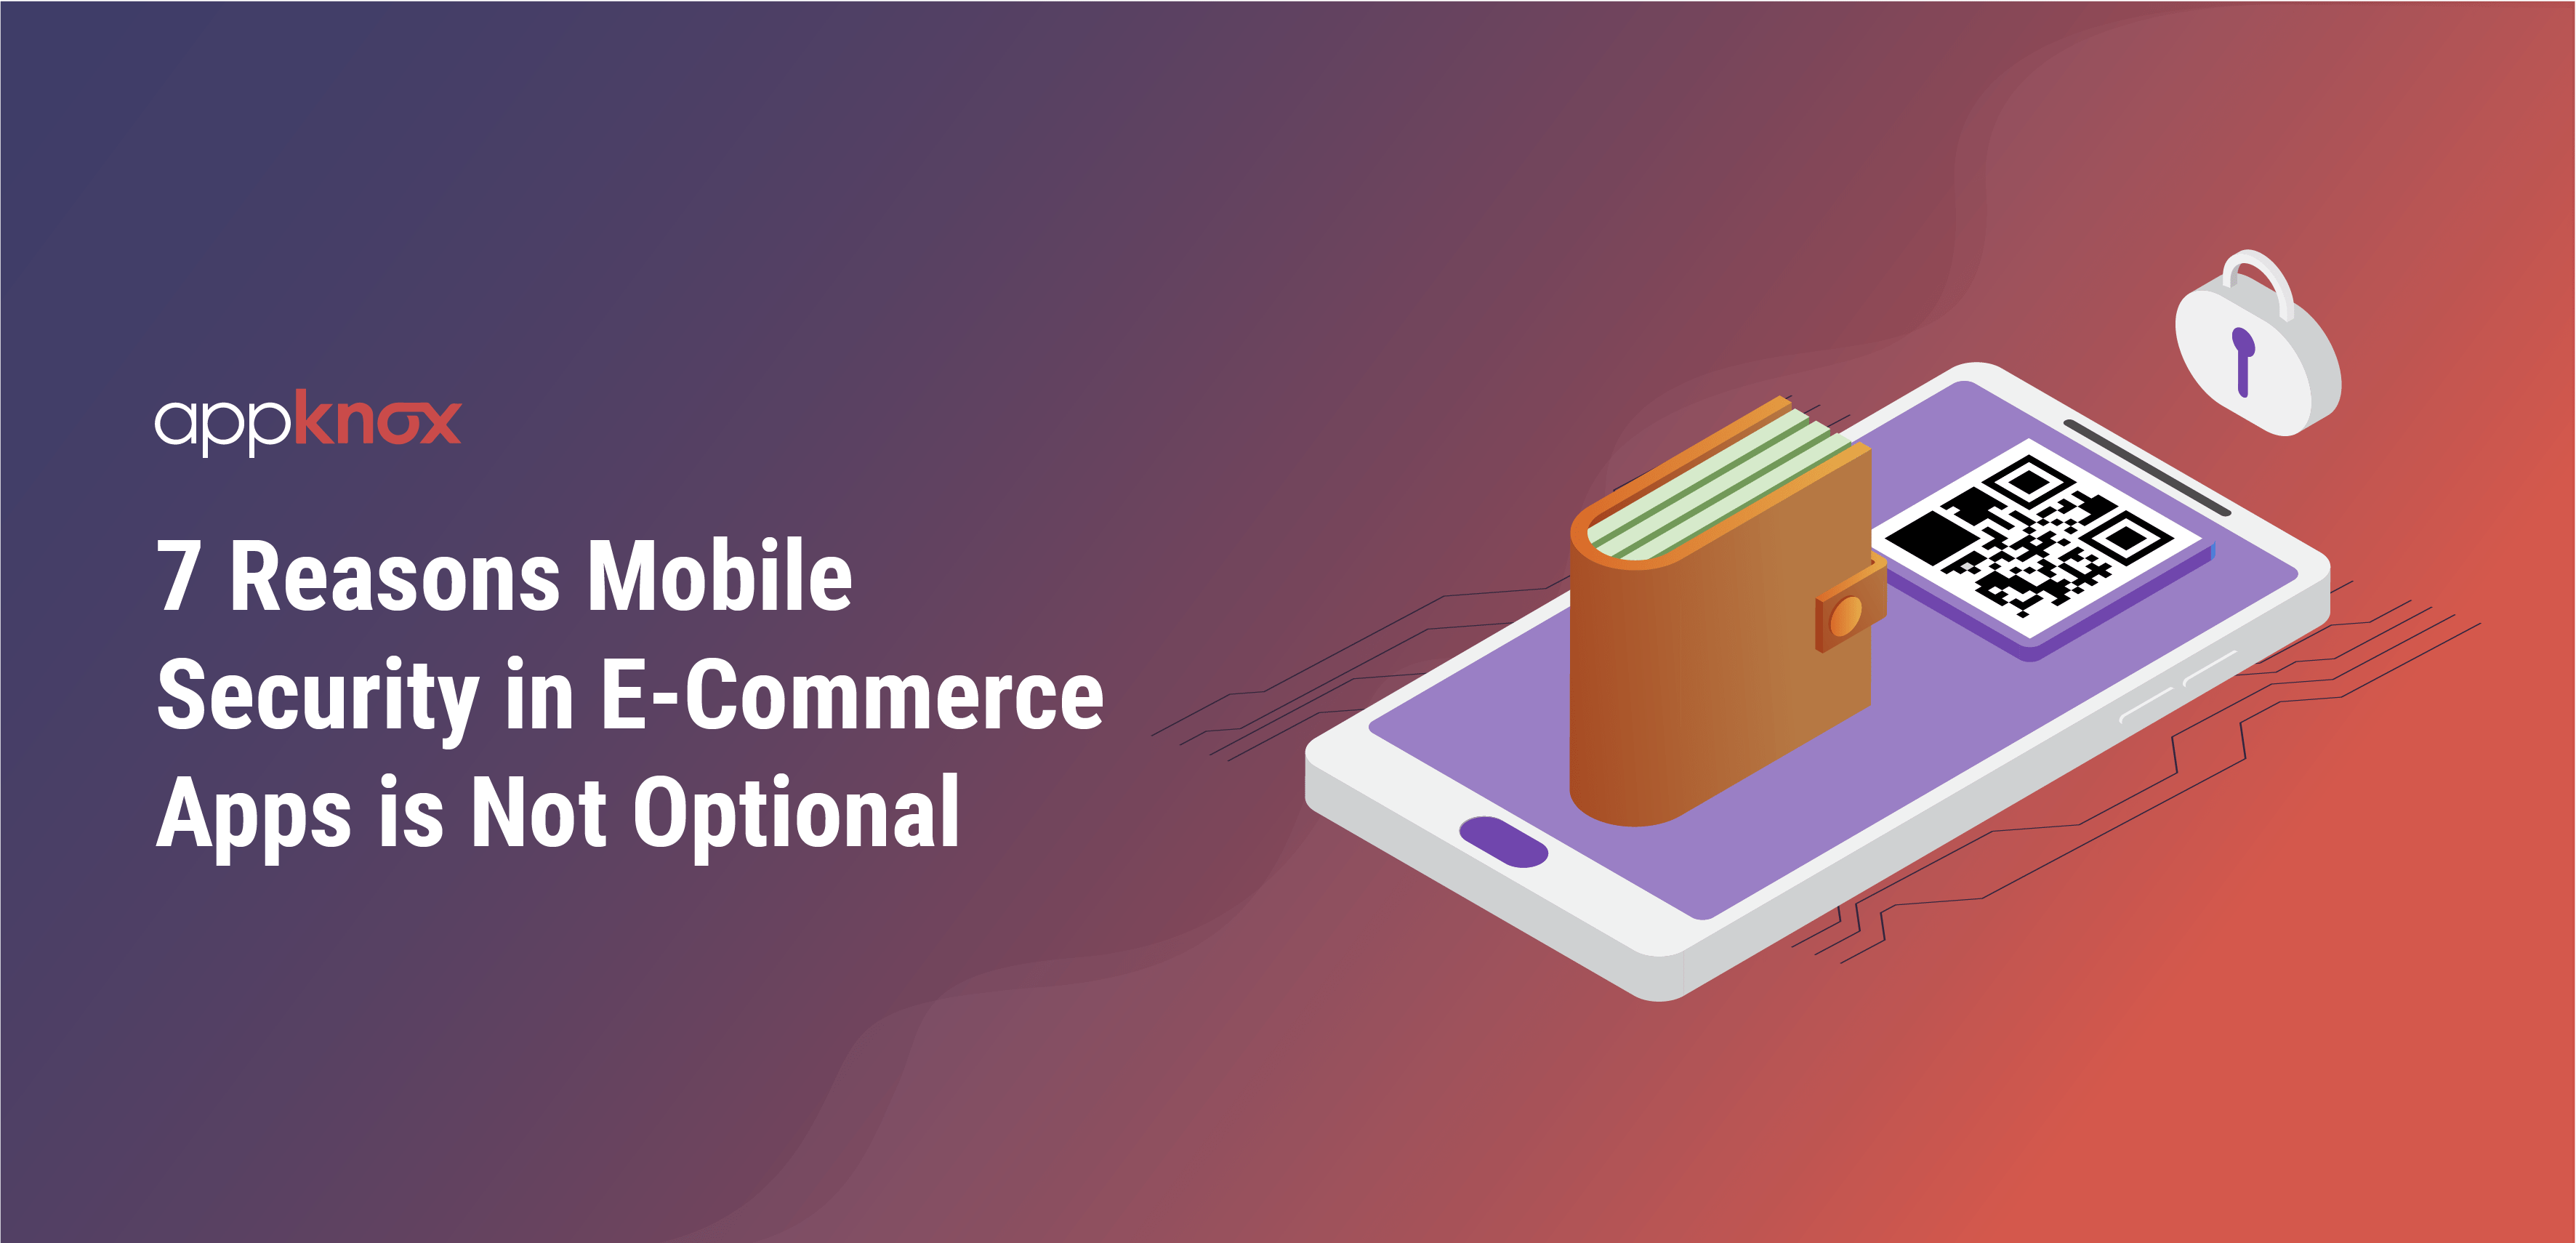 7 Reasons Mobile Security in E-Commerce Apps is Not Optional, Even for Early-Stage Startups